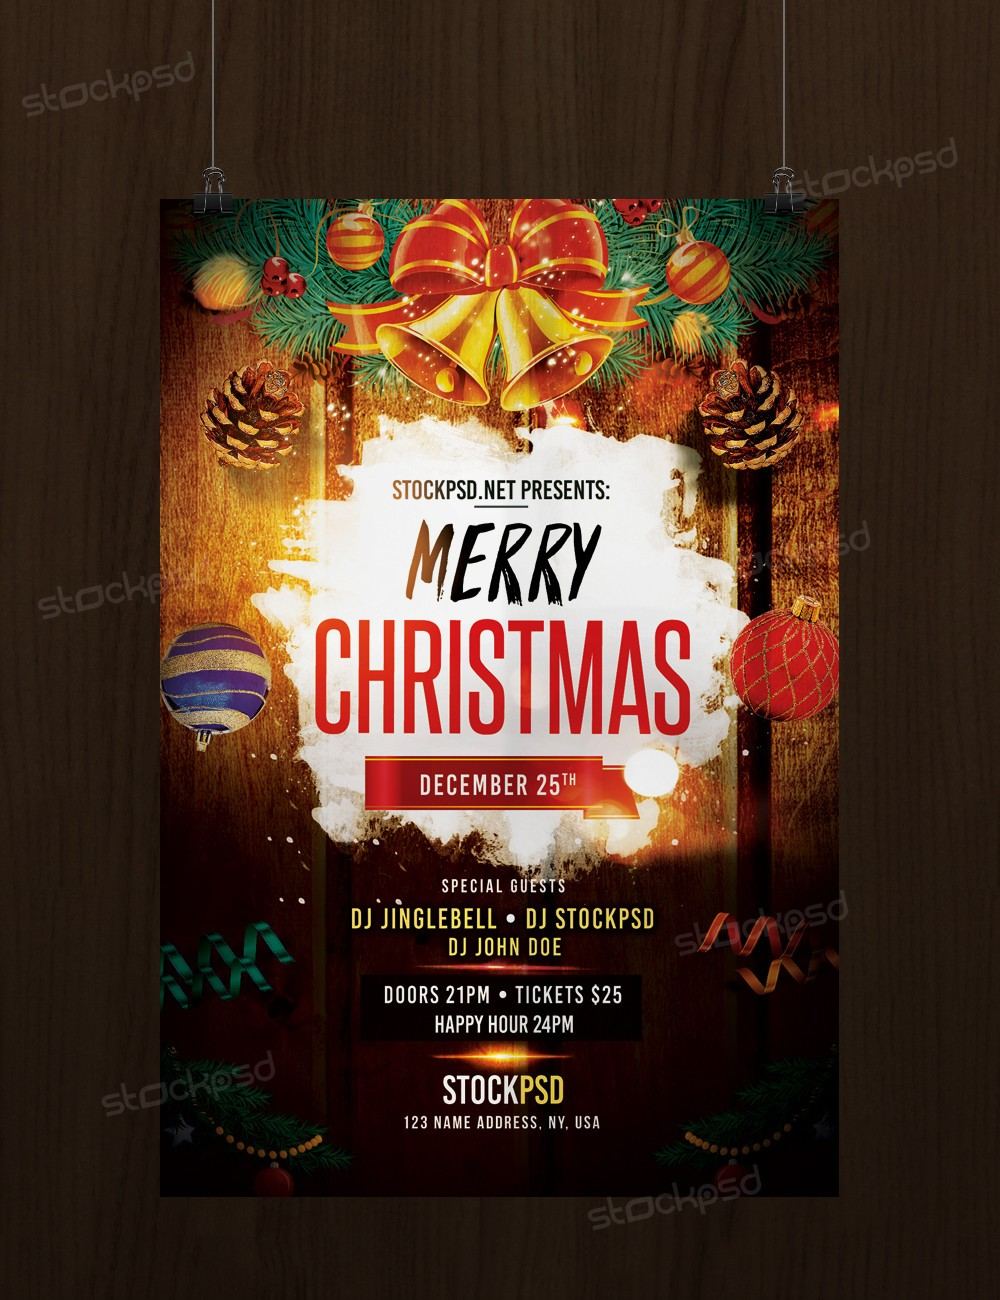 stockpsdnet freebie templates download merry christmas free psd flyer template stockpsdnet freebie templates